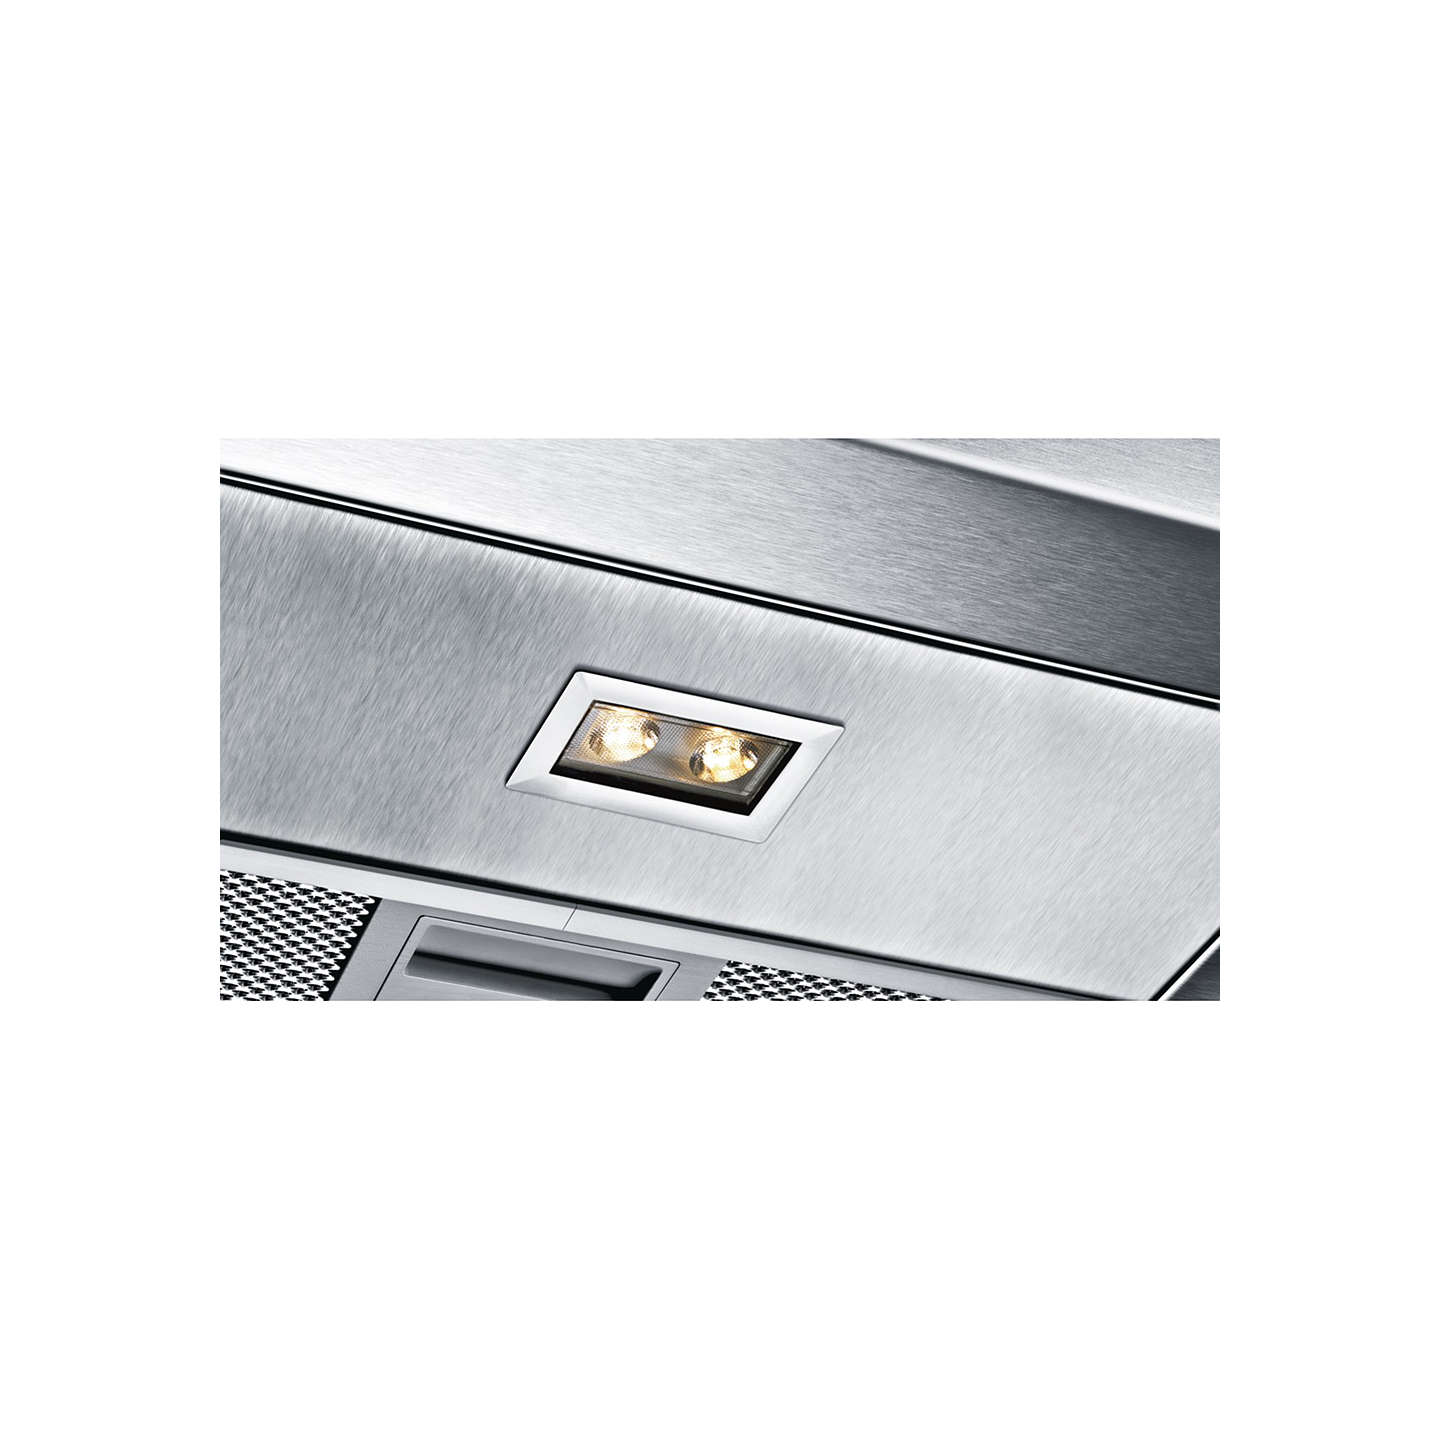 BuySiemens LC77BE532B Chimney Cooker Hood, Stainless Steel Online at johnlewis.com